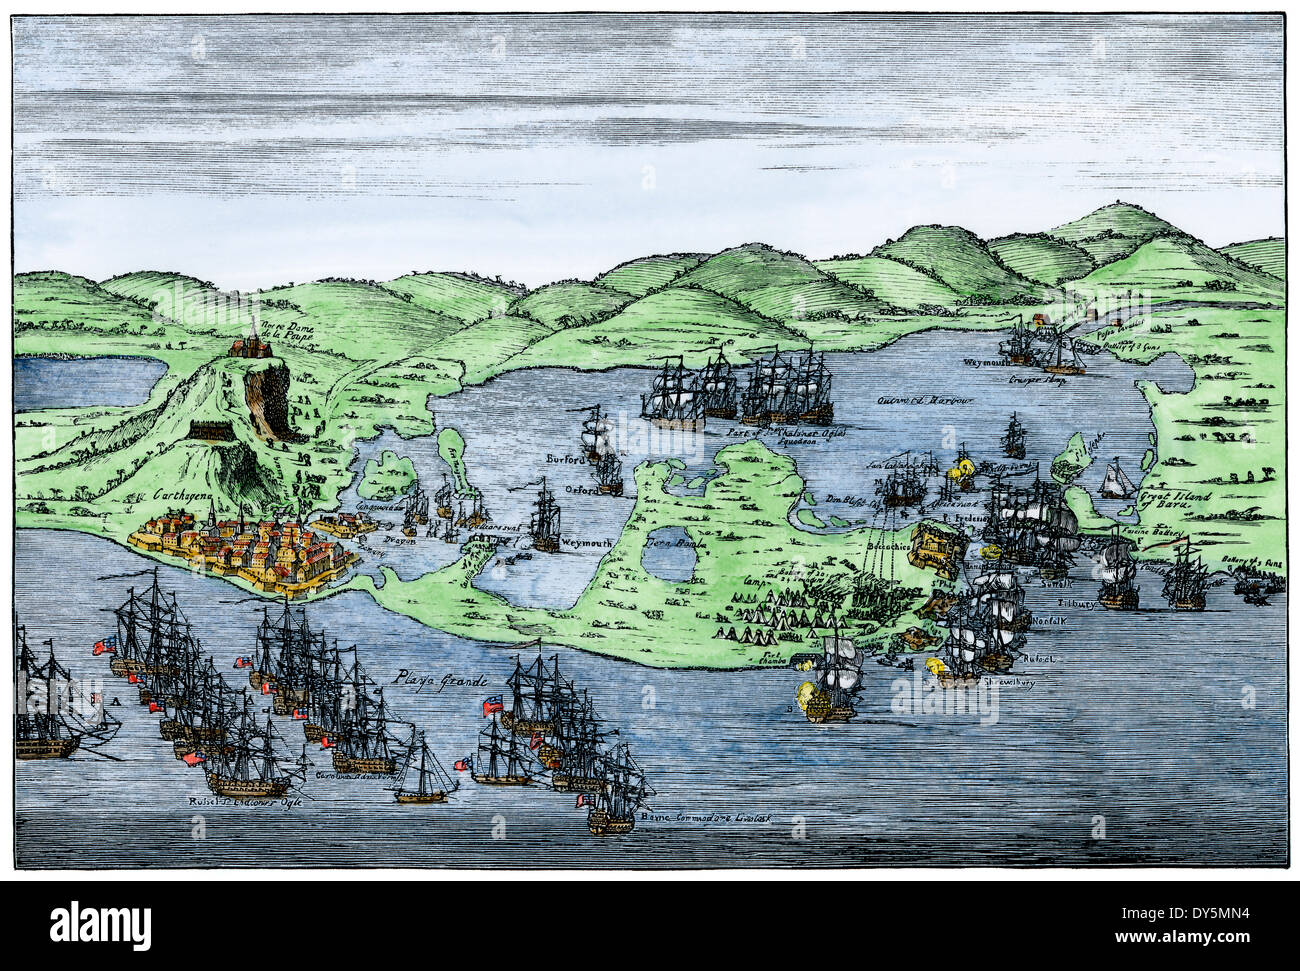 British naval invasion of Cartagena, Colombia, 1741. Hand-colored woodcut of a drawing by Gravelot - Stock Image